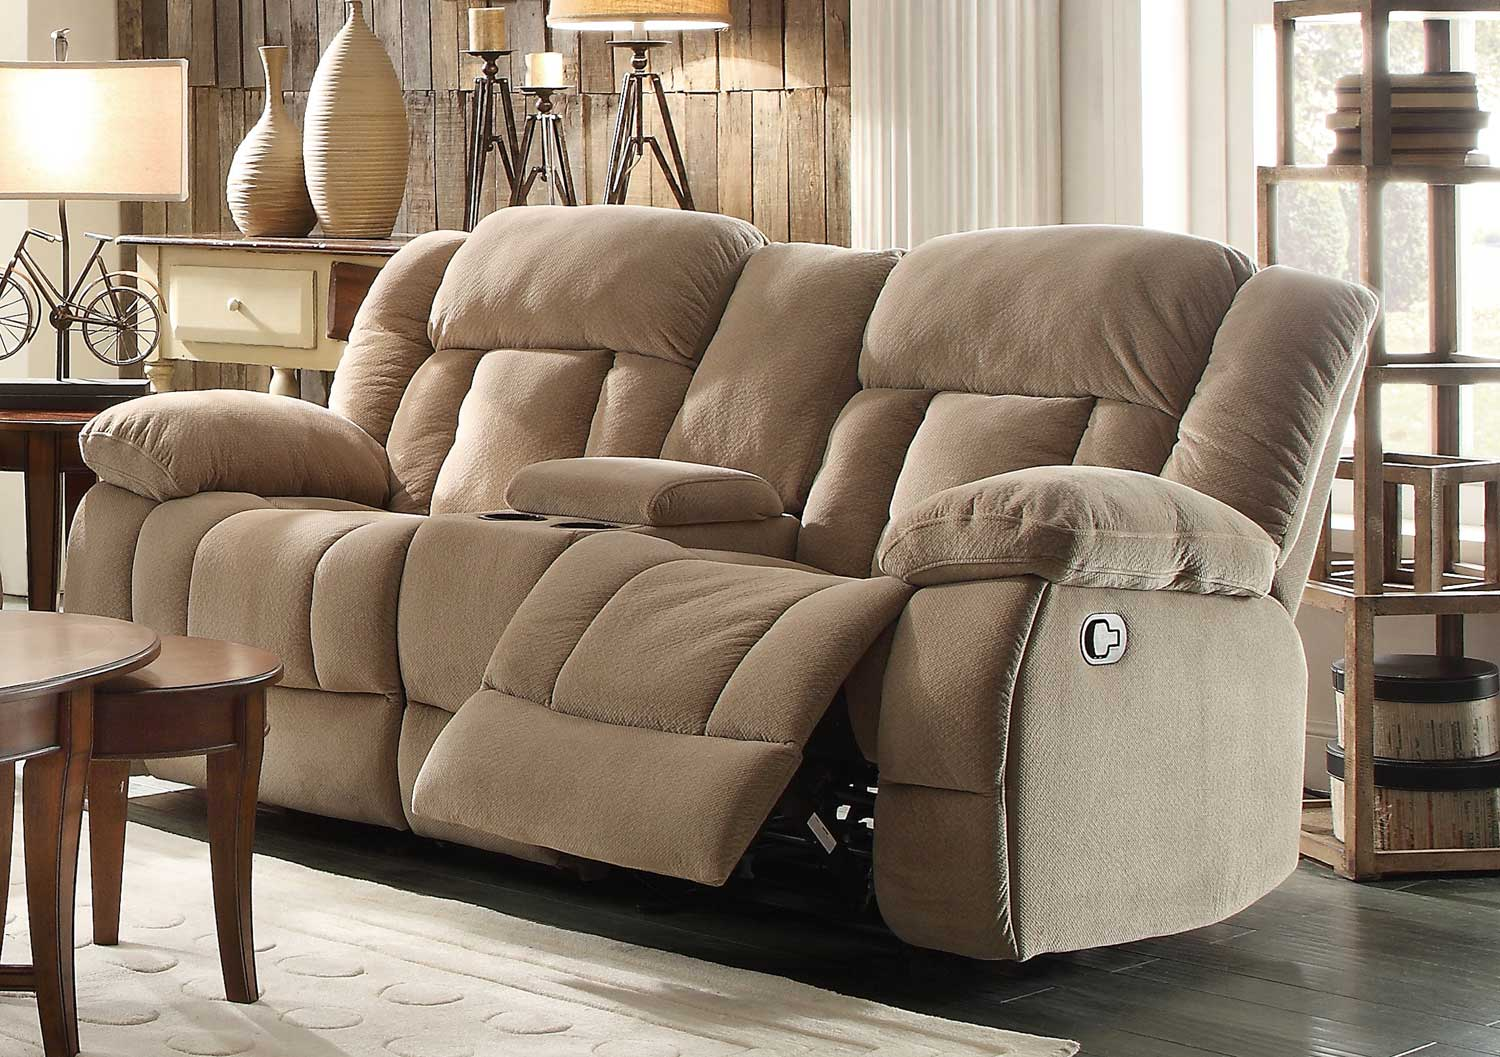 microfiber reclining loveseat with console homelegance laurelton double glider reclining love seat with center console LSRDUQC